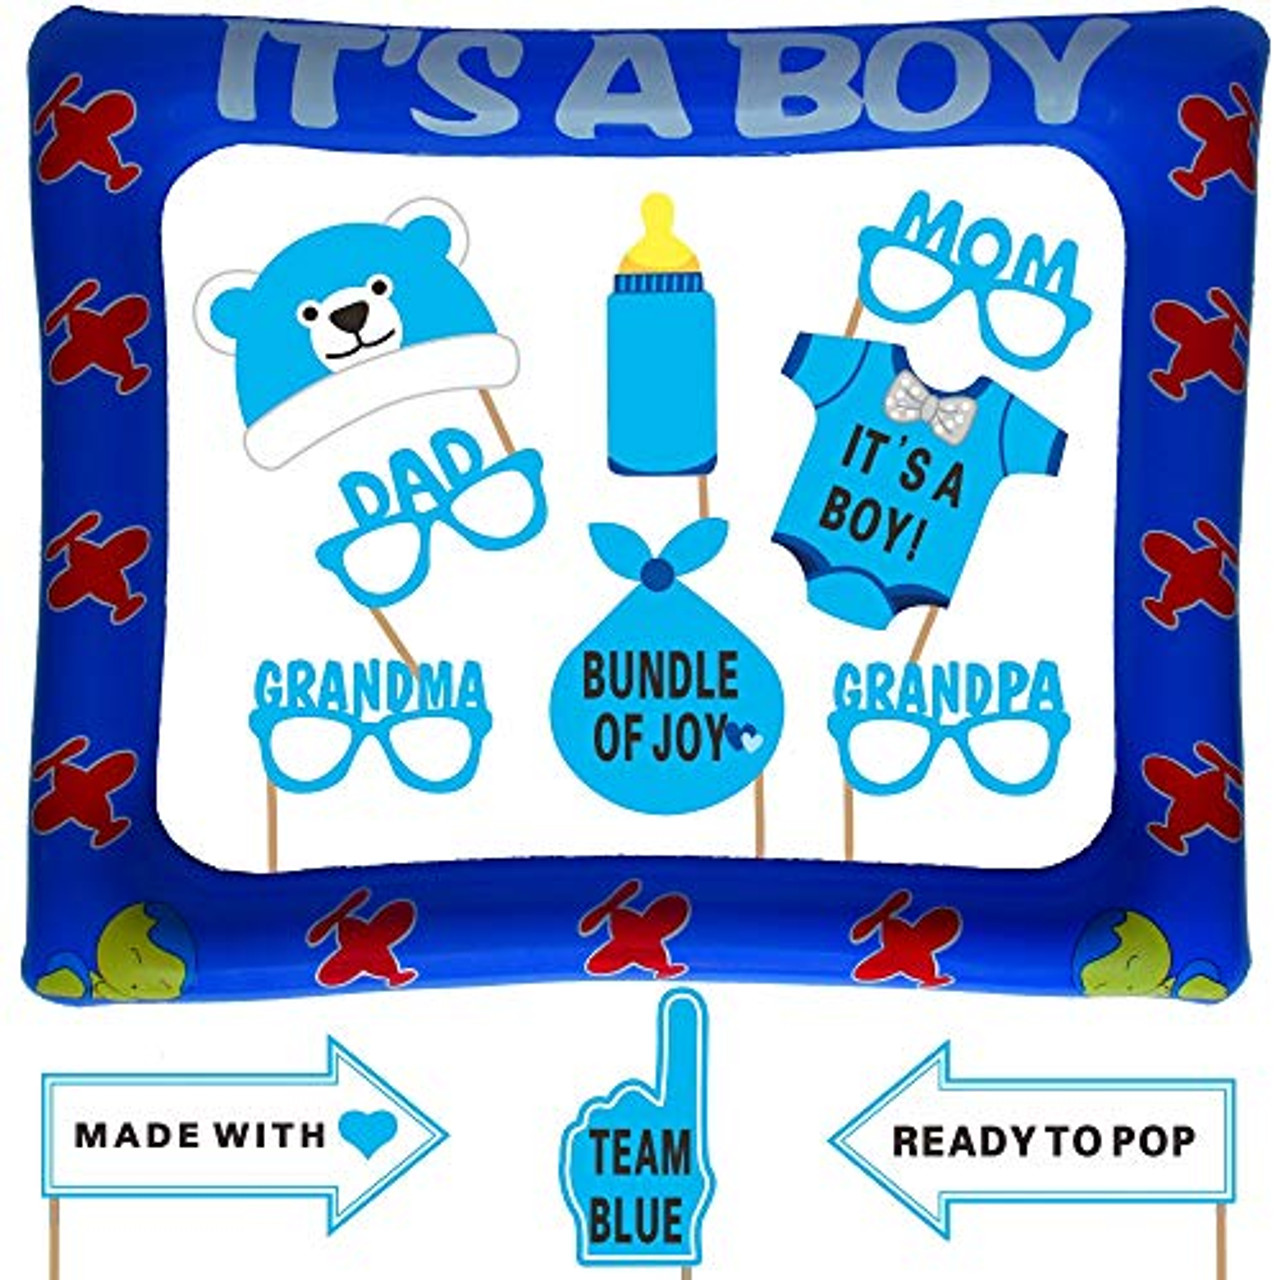 NO DIY REQUIRED Attached to the stick 23 Count Baby Boy Decorations- Extra Large Baby Shower Photo Booth Props with Inflatable Picture Frame Included